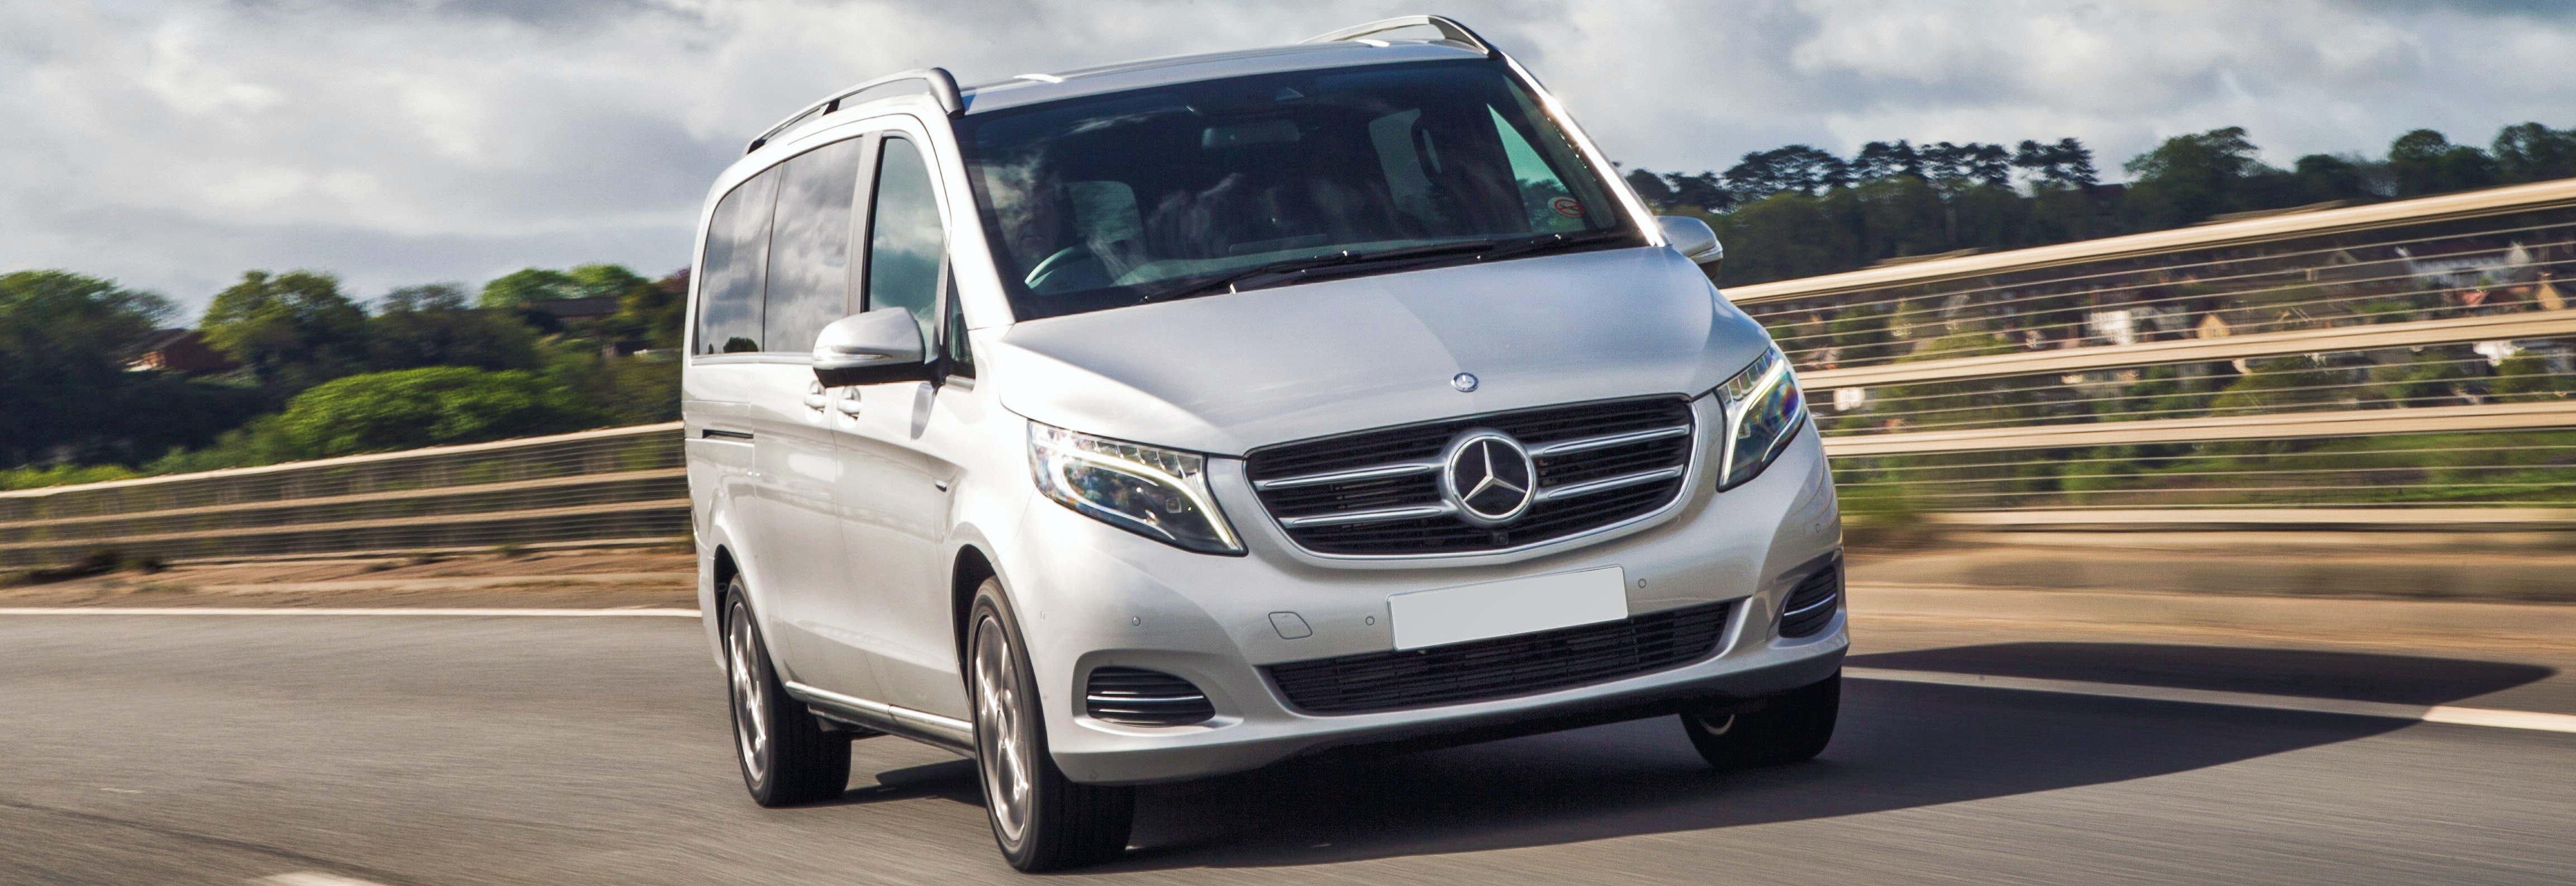 2018 mercedes v-class silver driving front